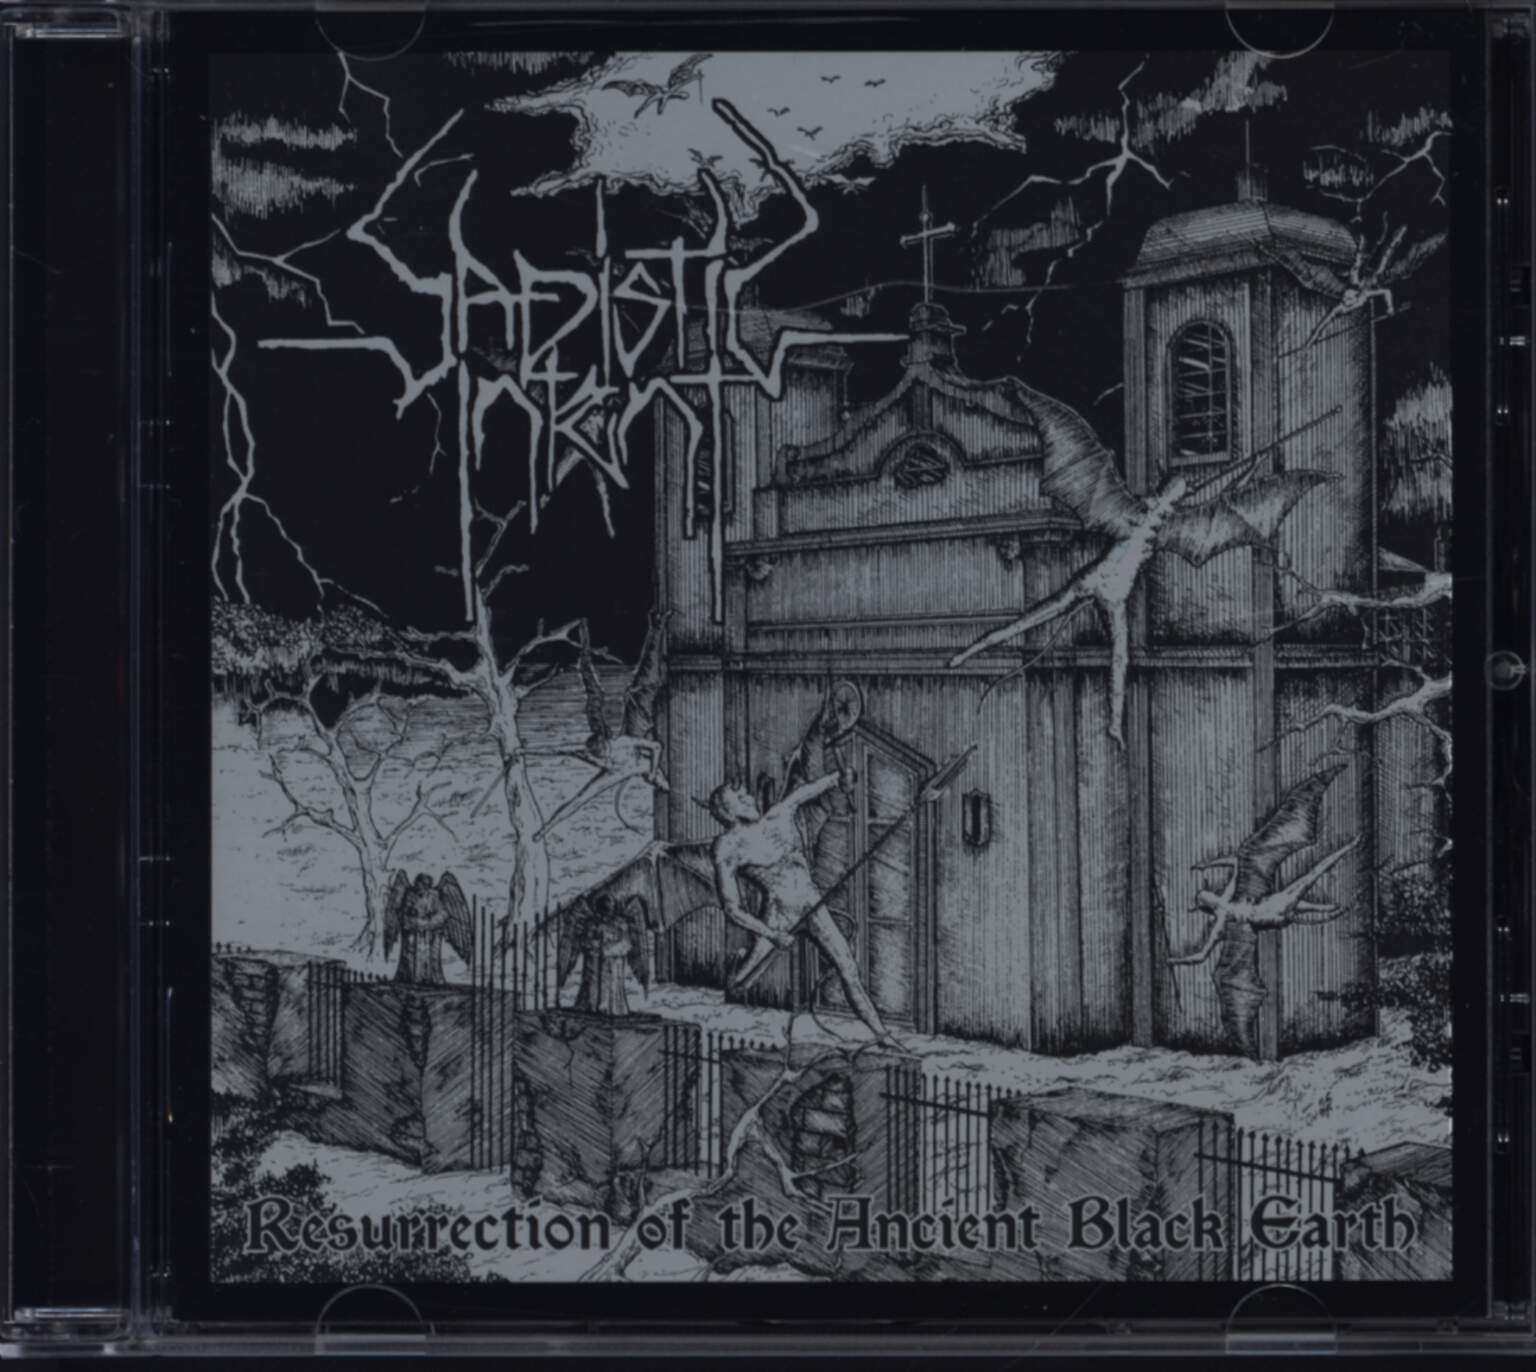 Sadistic Intent: Resurrection Of The Ancient Black Earth, CD